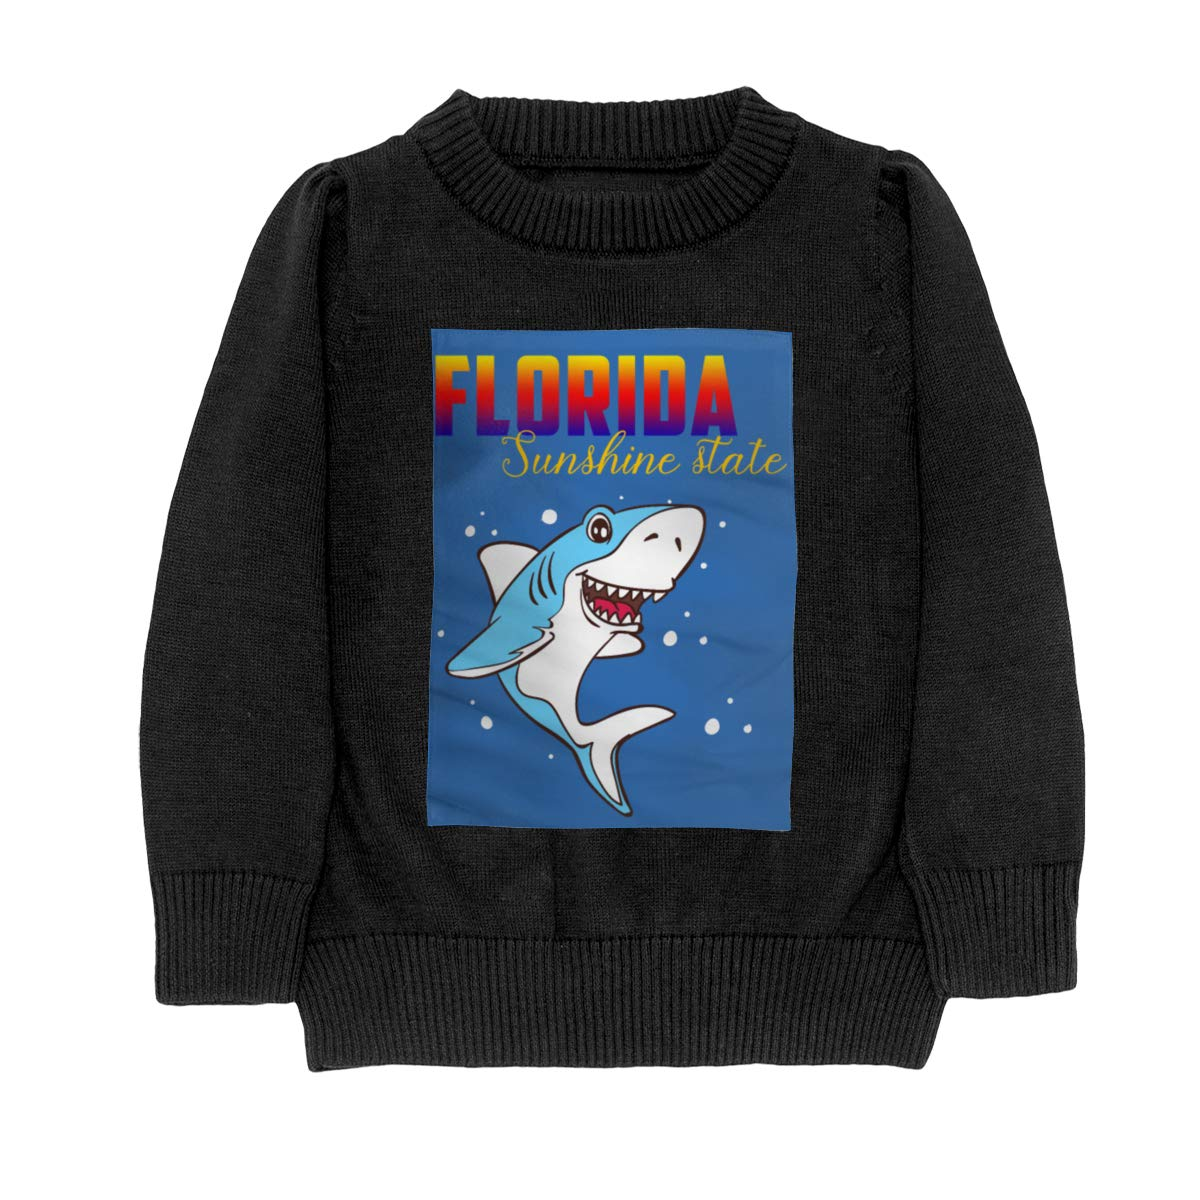 Florida Sunshine State Shark Knit Sweater Pullover for Youth Girl